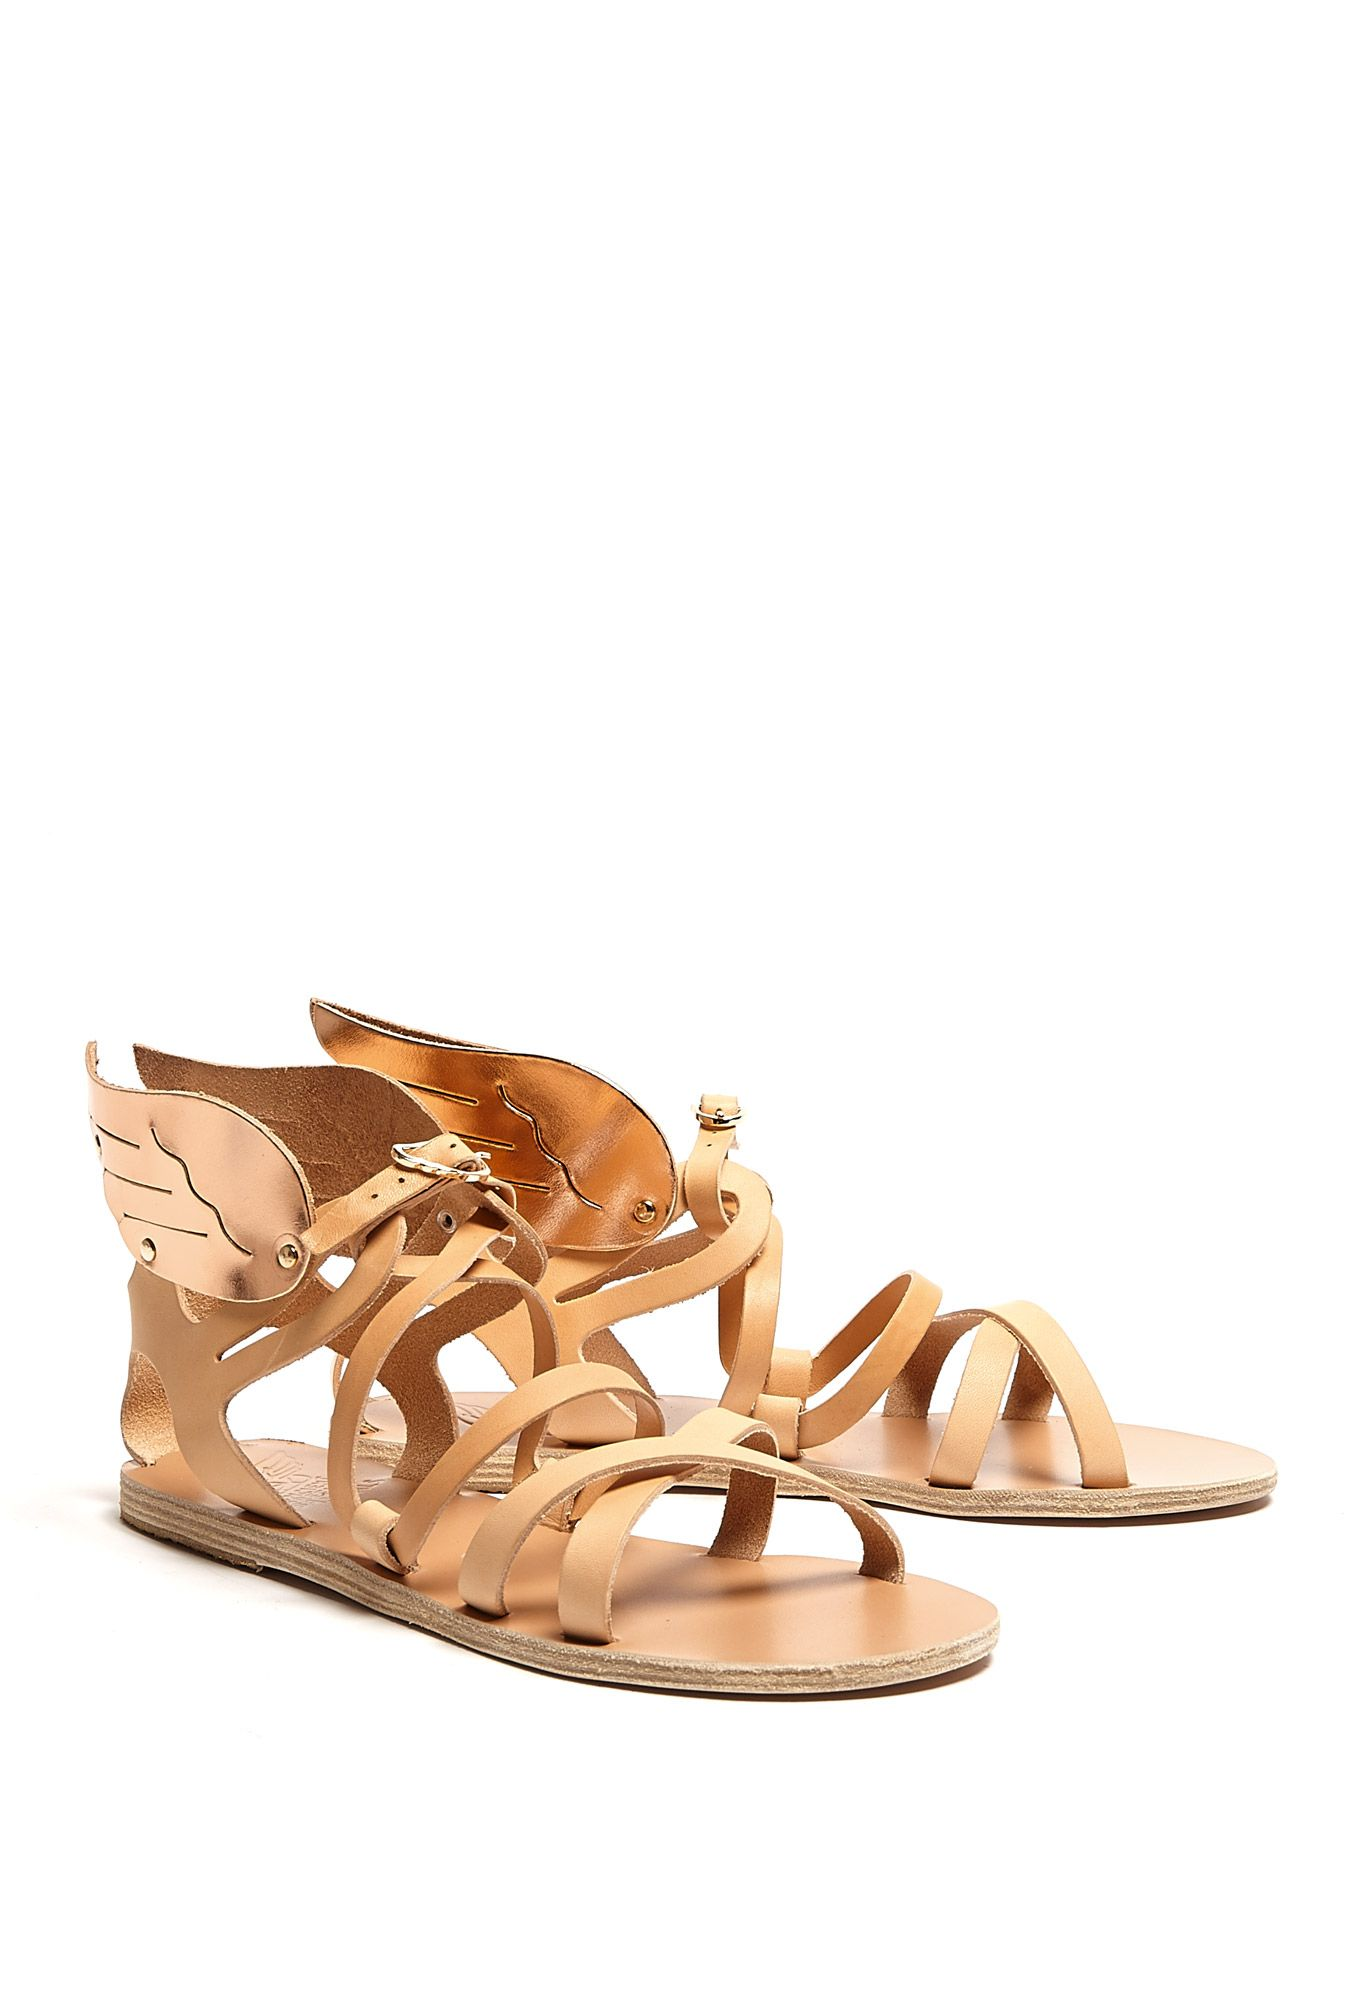 Exclusive Nephele Wings Flat Sandal by Ancient Greek Sandals